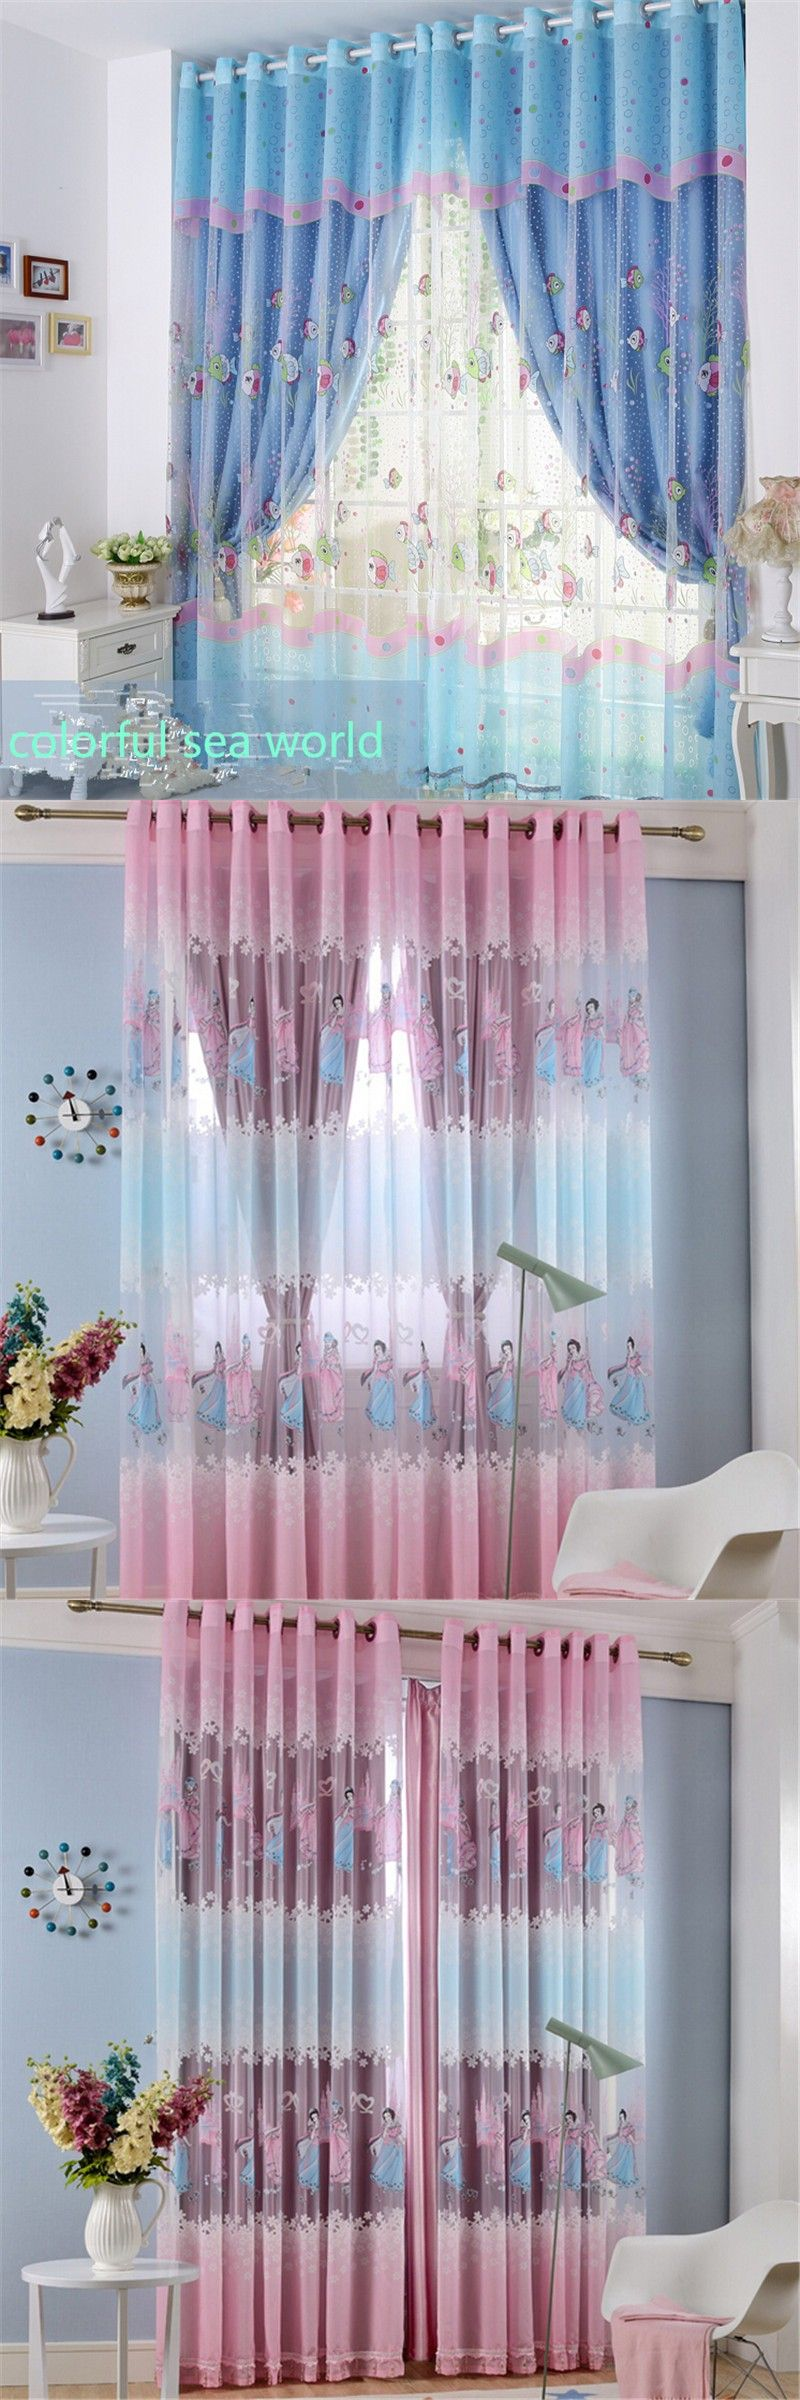 Kid blue sea world pink princess bedroom window tulle curtain+100% blackout finished luxury curtains is part of bedroom Blue Window -